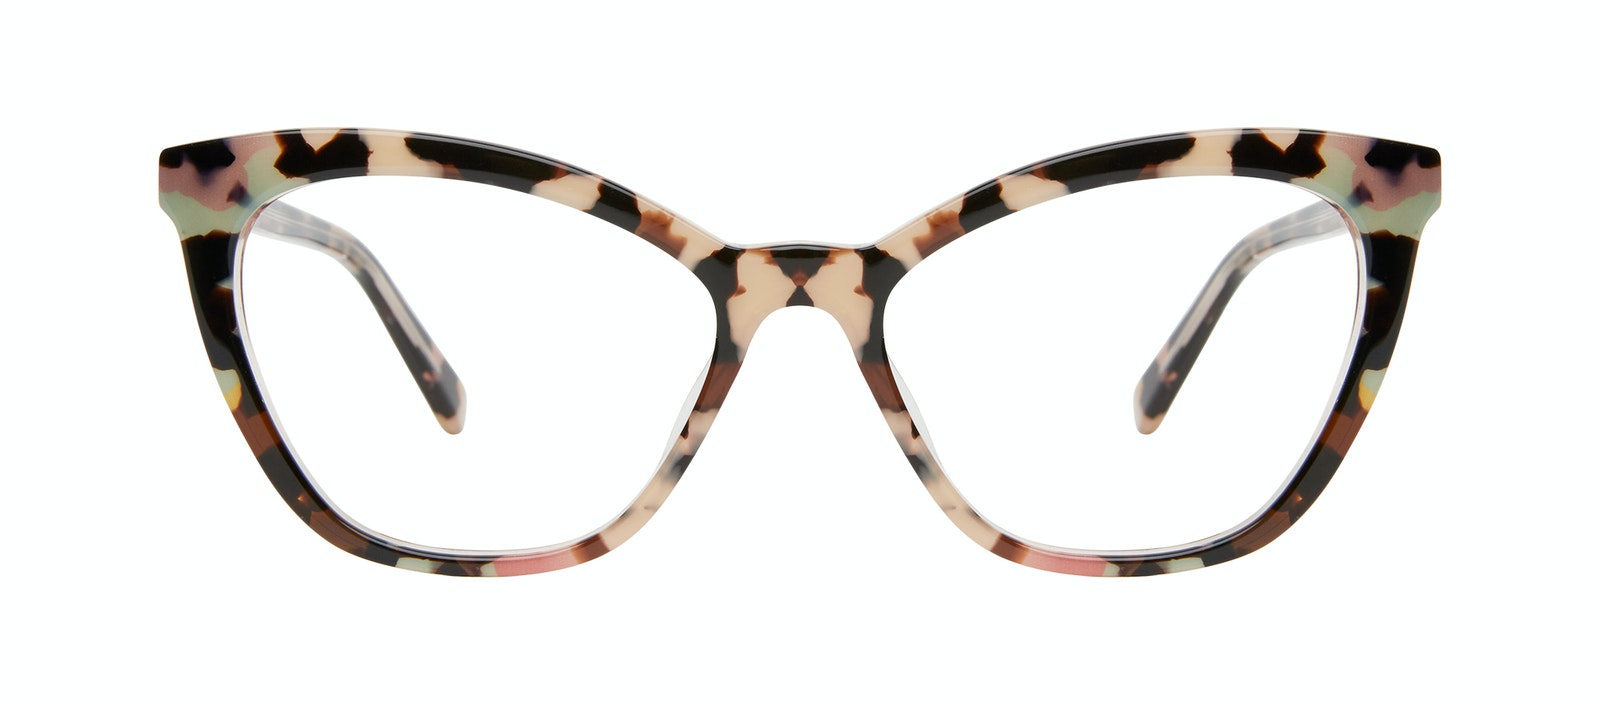 Affordable Fashion Glasses Cat Eye Eyeglasses Women Elan Pastel Tort Front